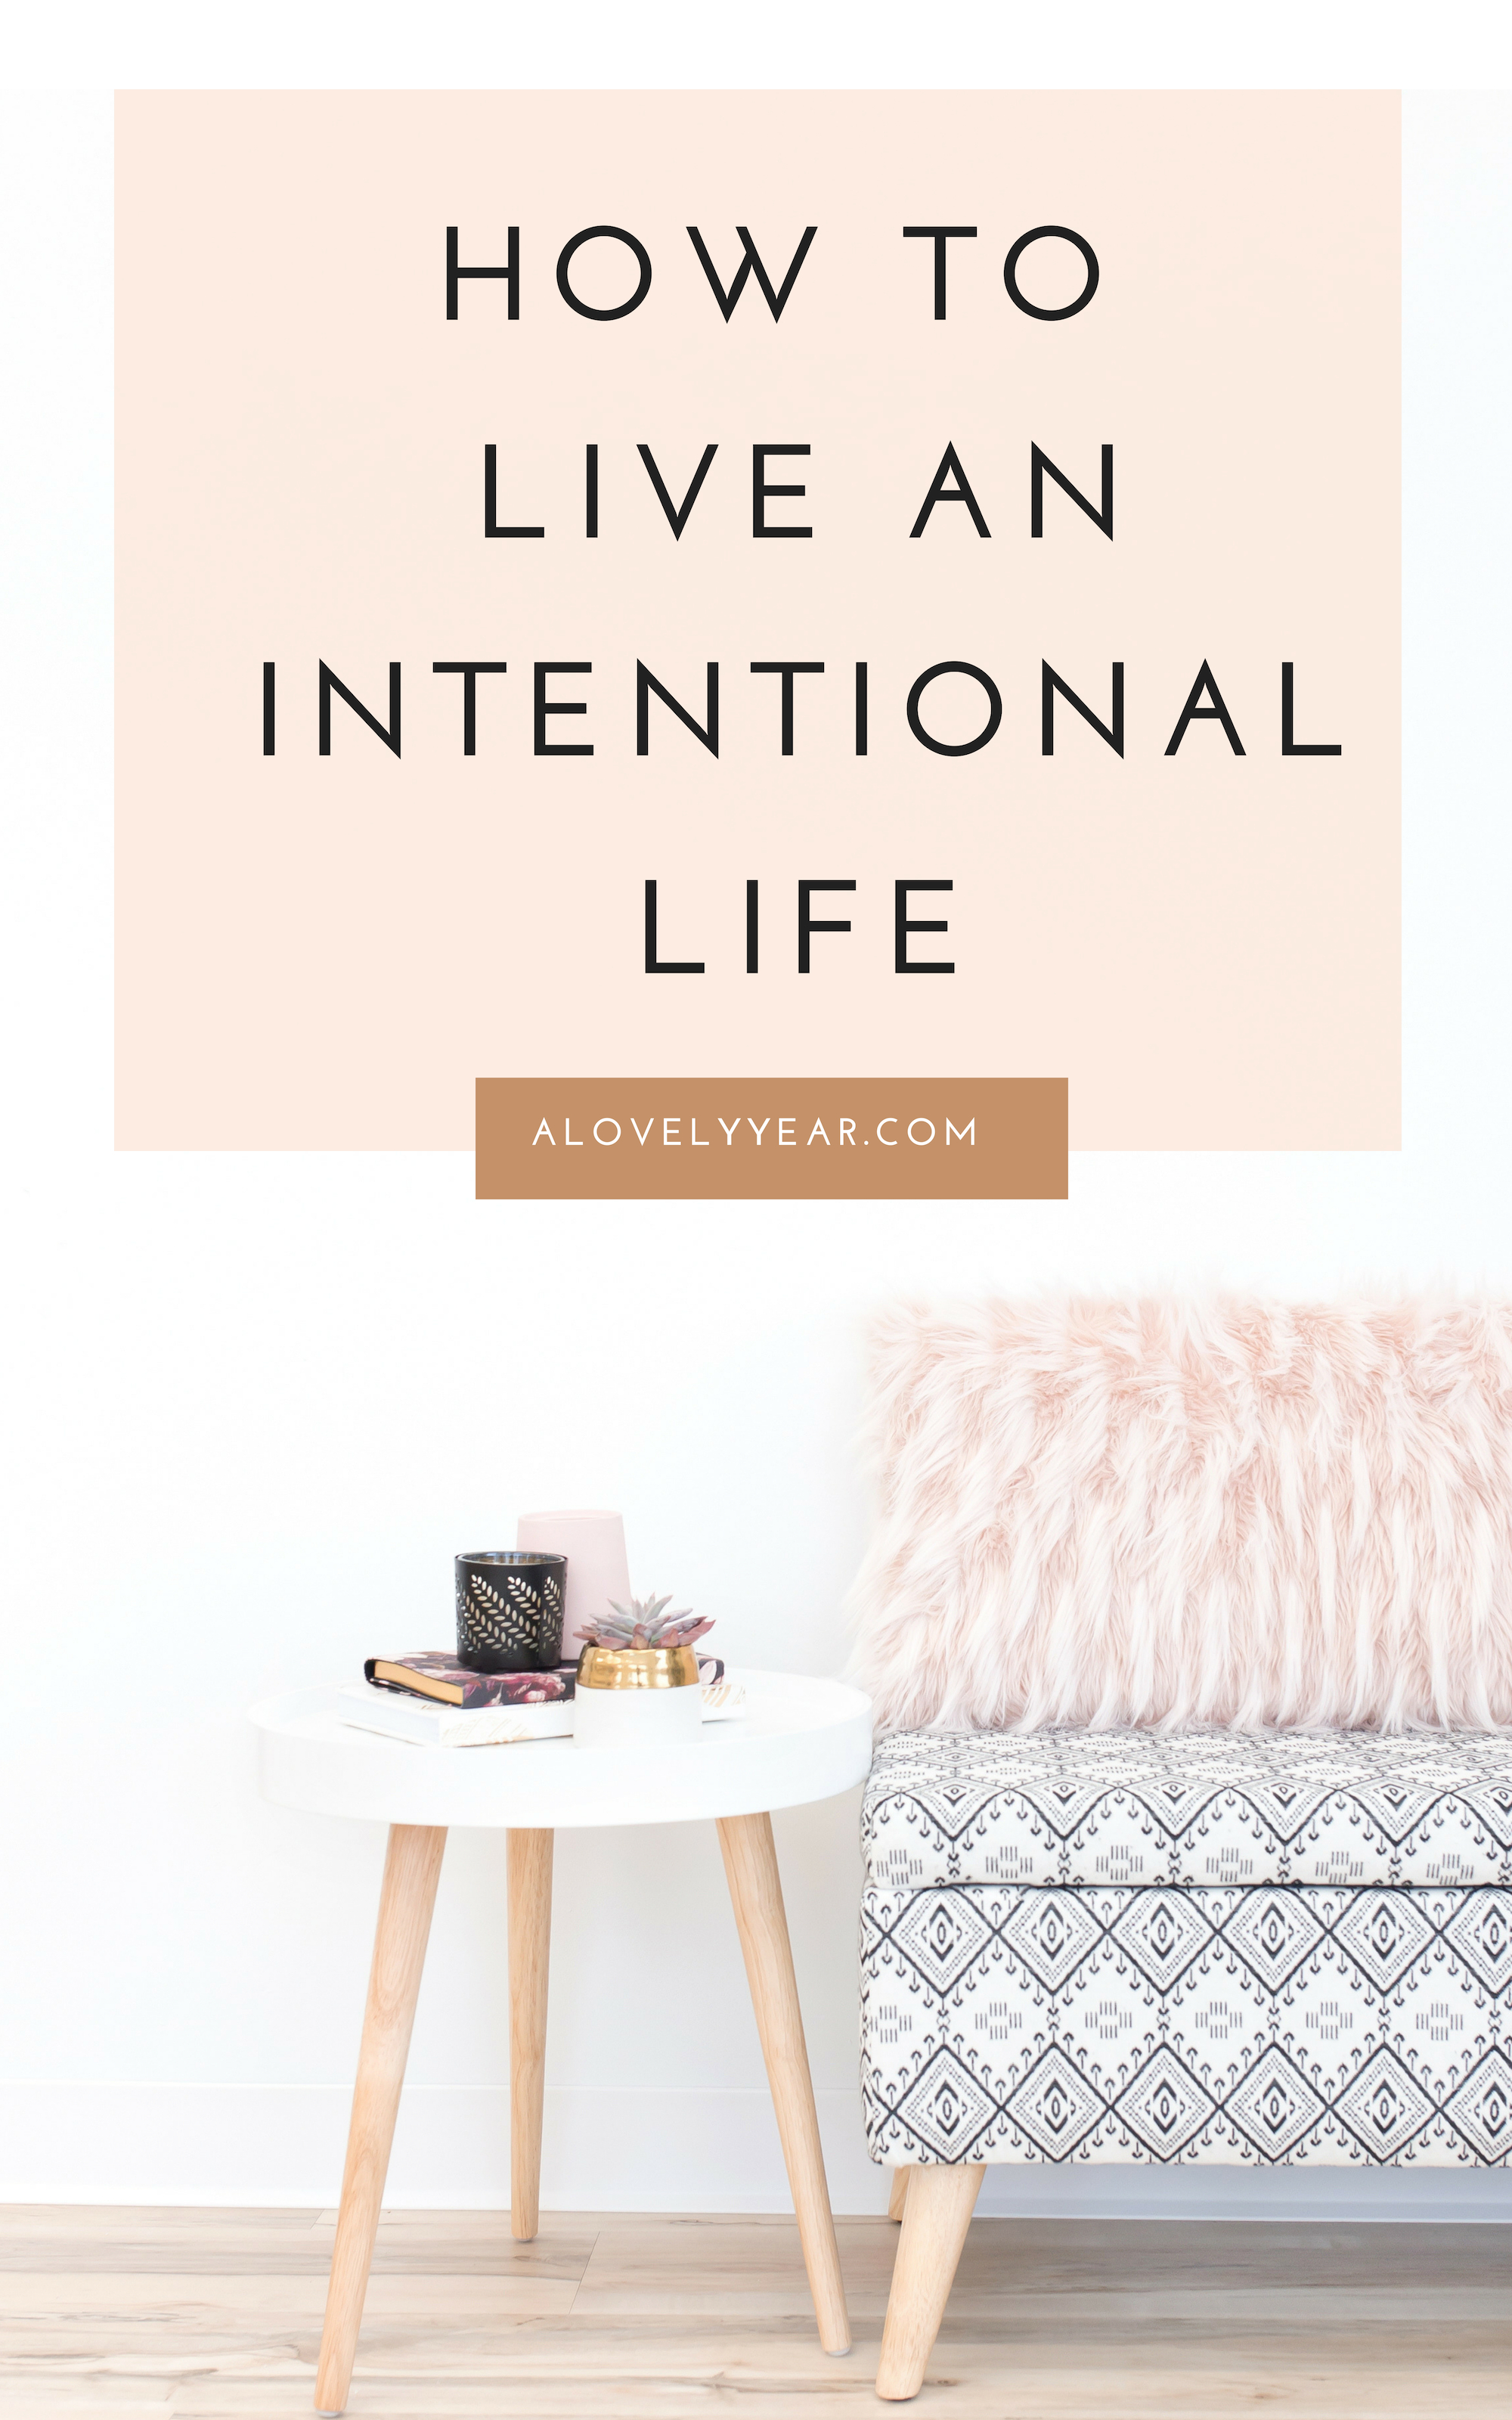 How to live an intentional life